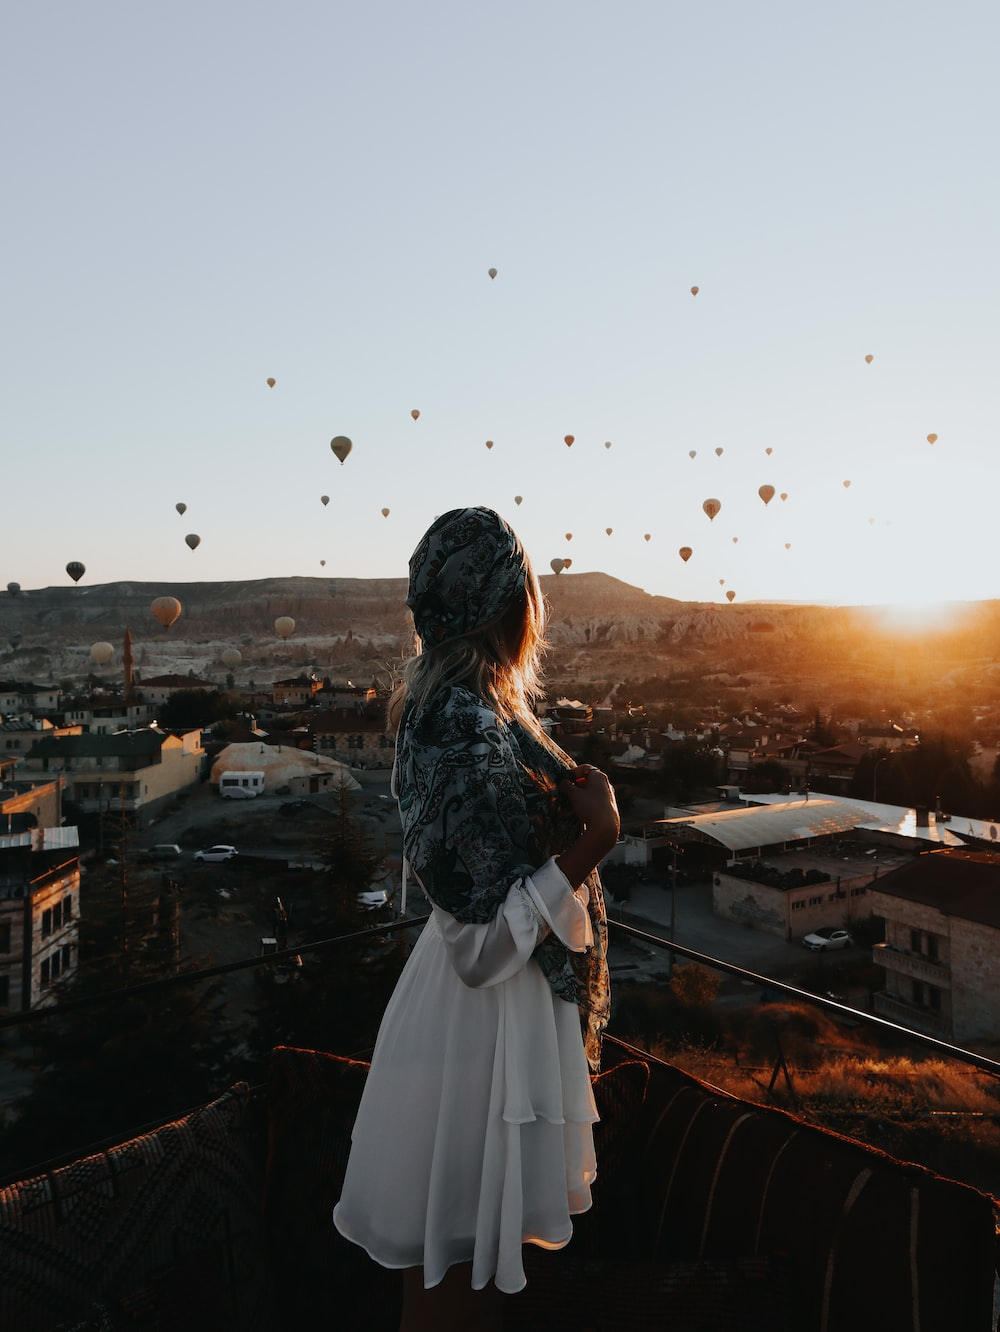 woman in white dress standing on top of building during sunset